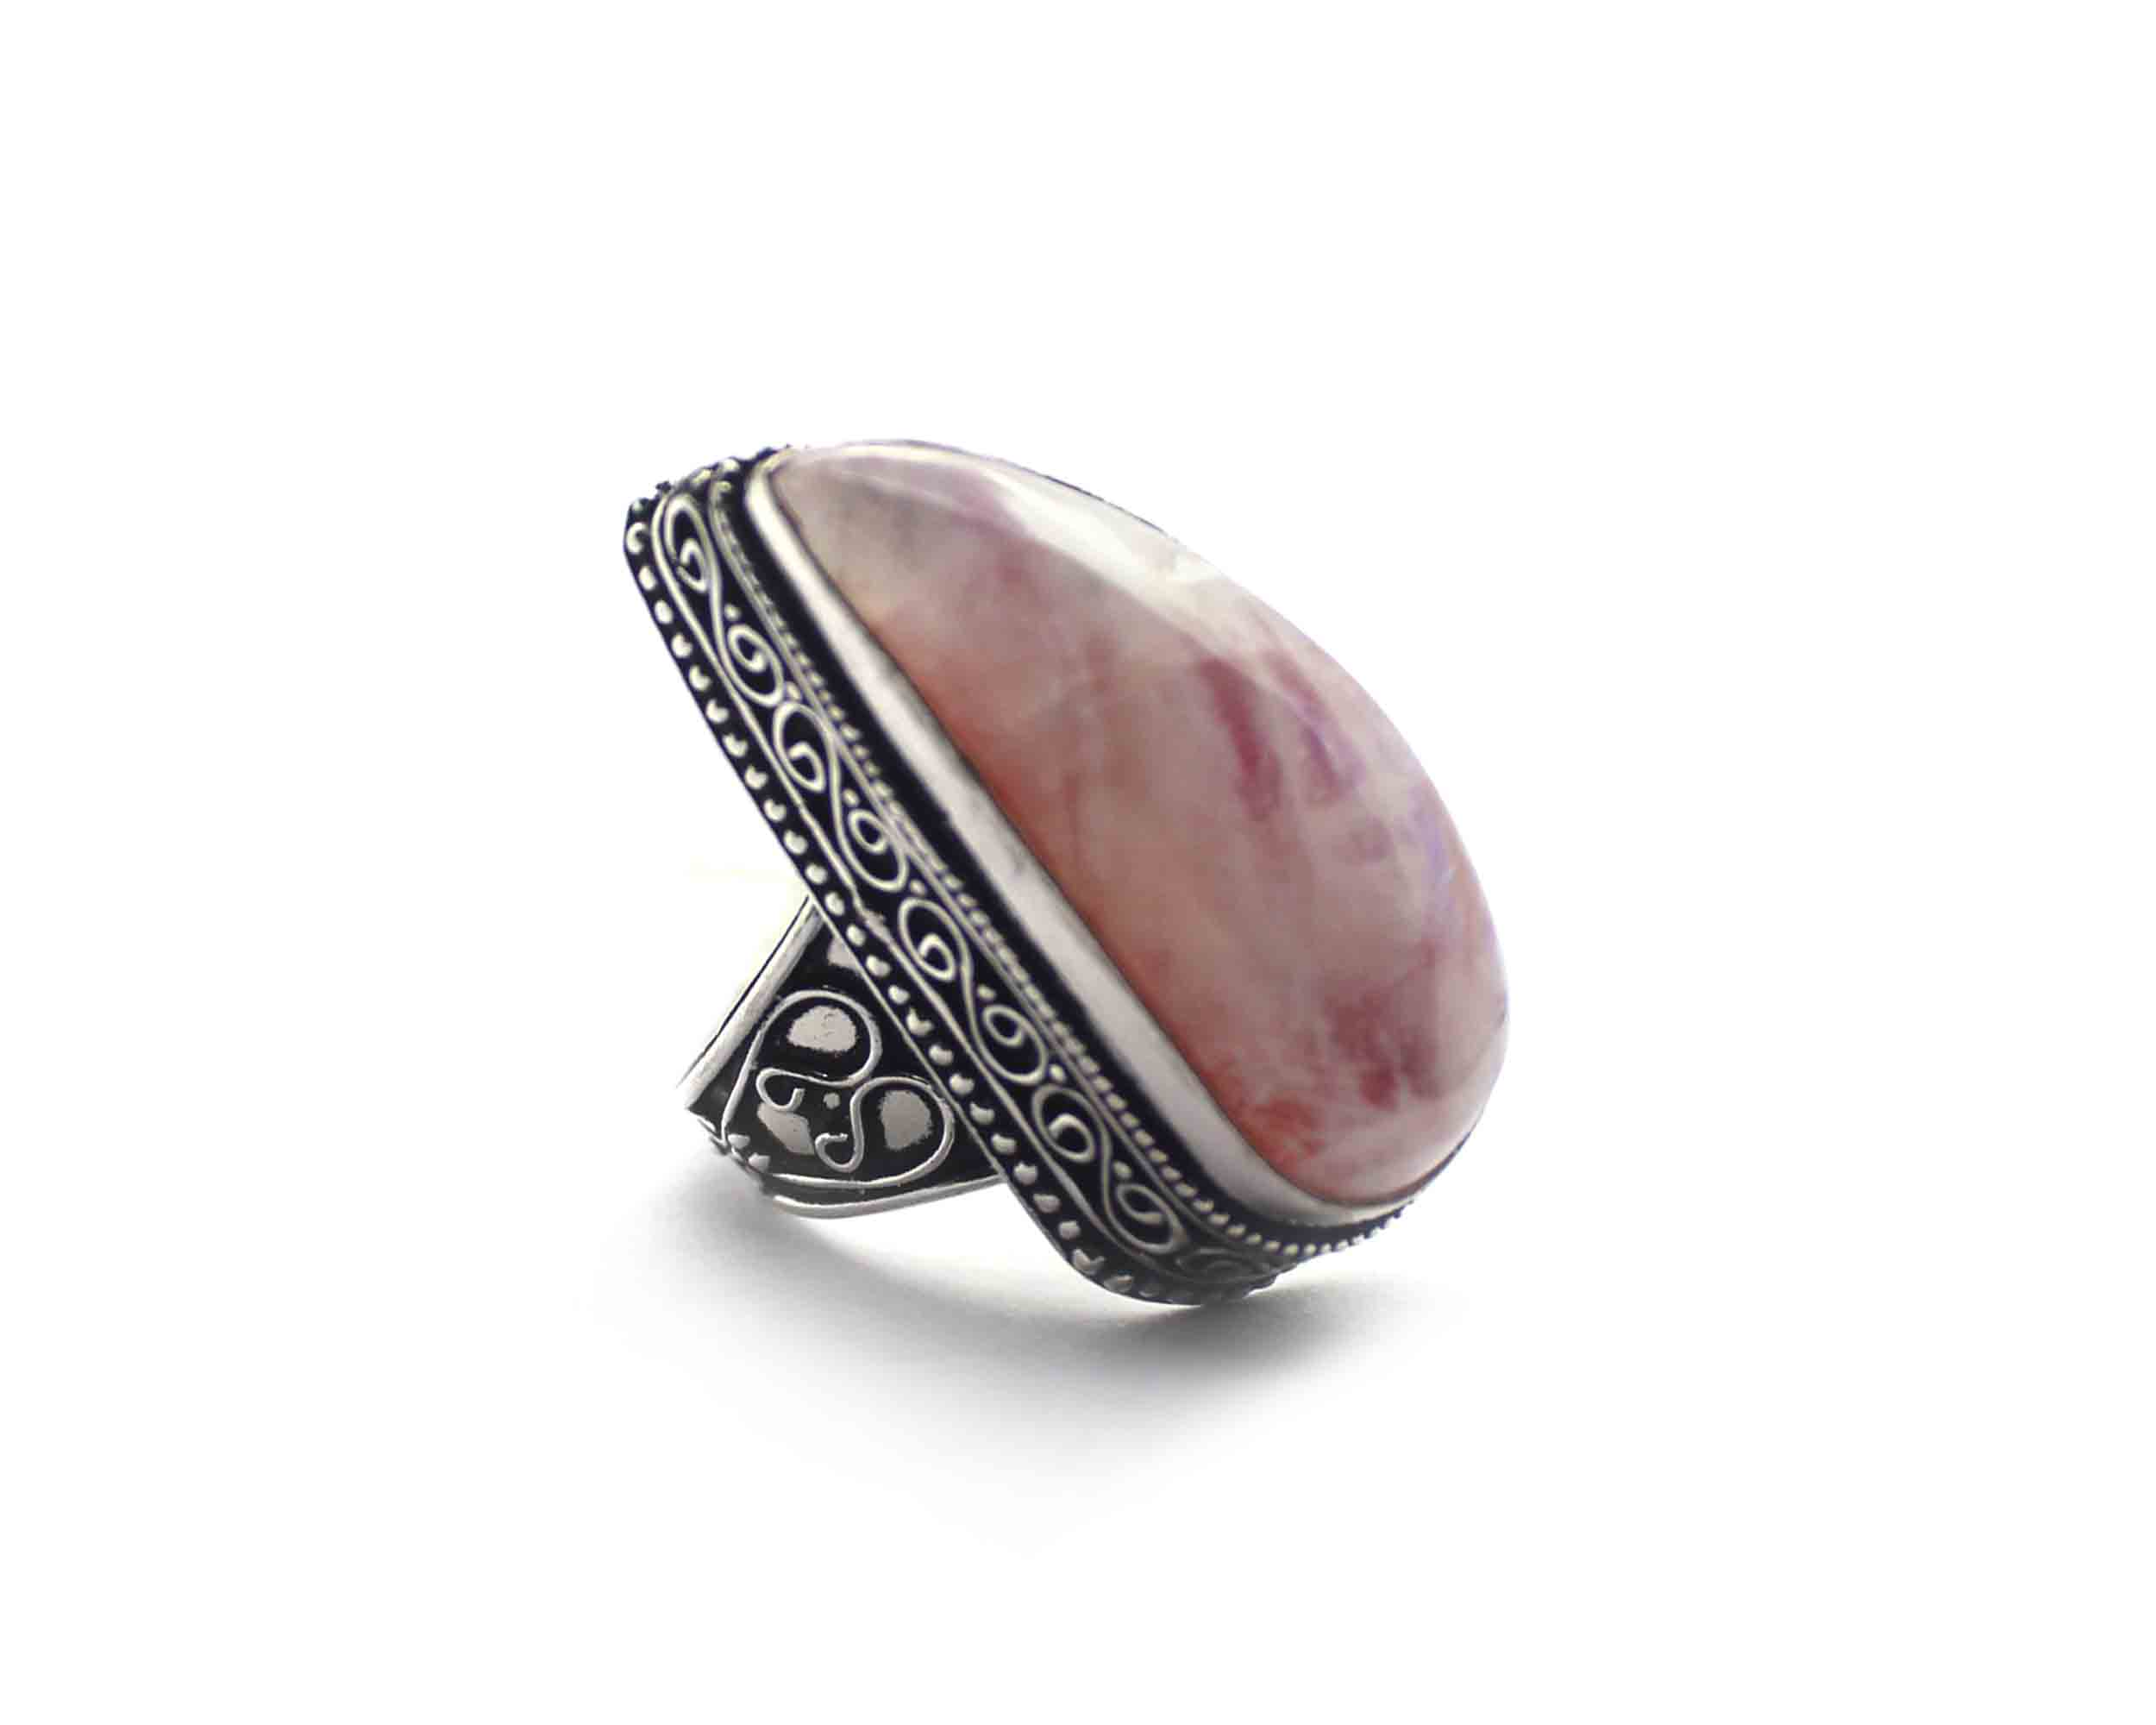 Rhodochrosite Silver Coated Ring Size US 8.75